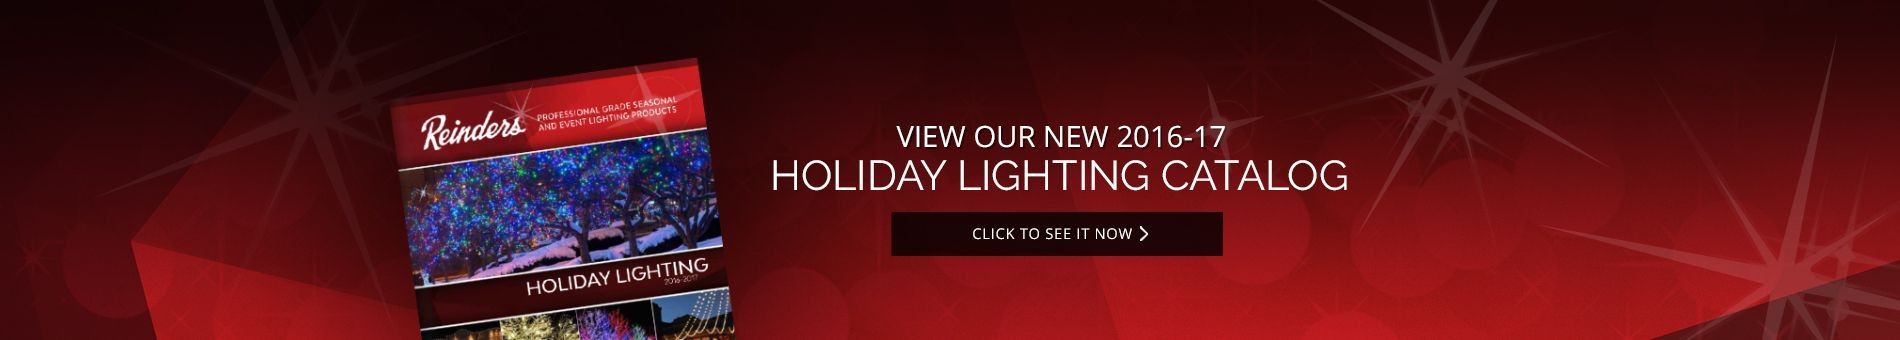 View Our New Holiday LED Lighting Catalog